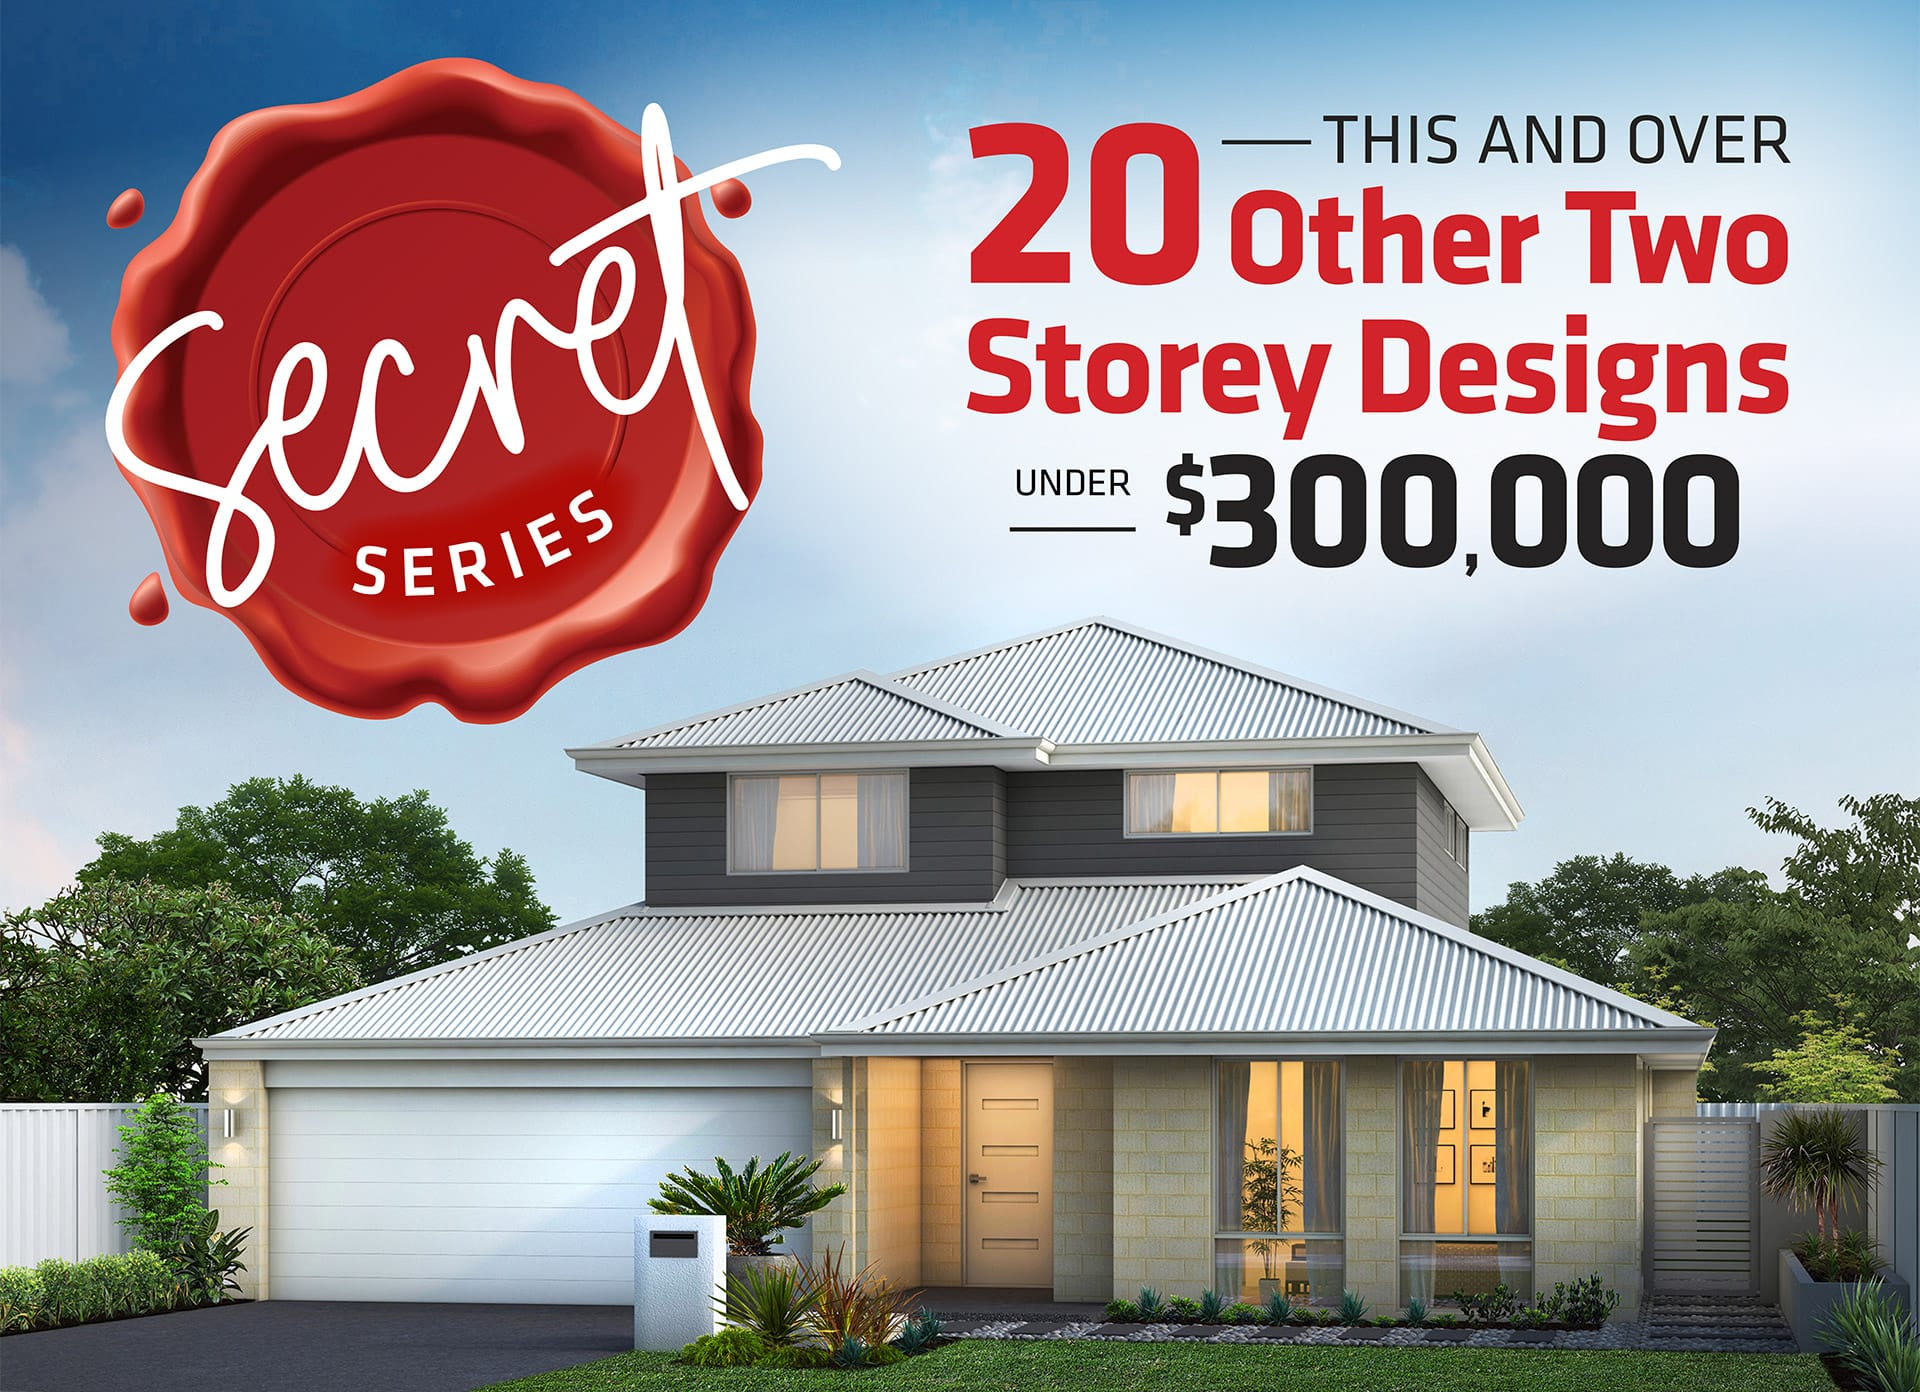 101 Residential Secret Series promotion banner